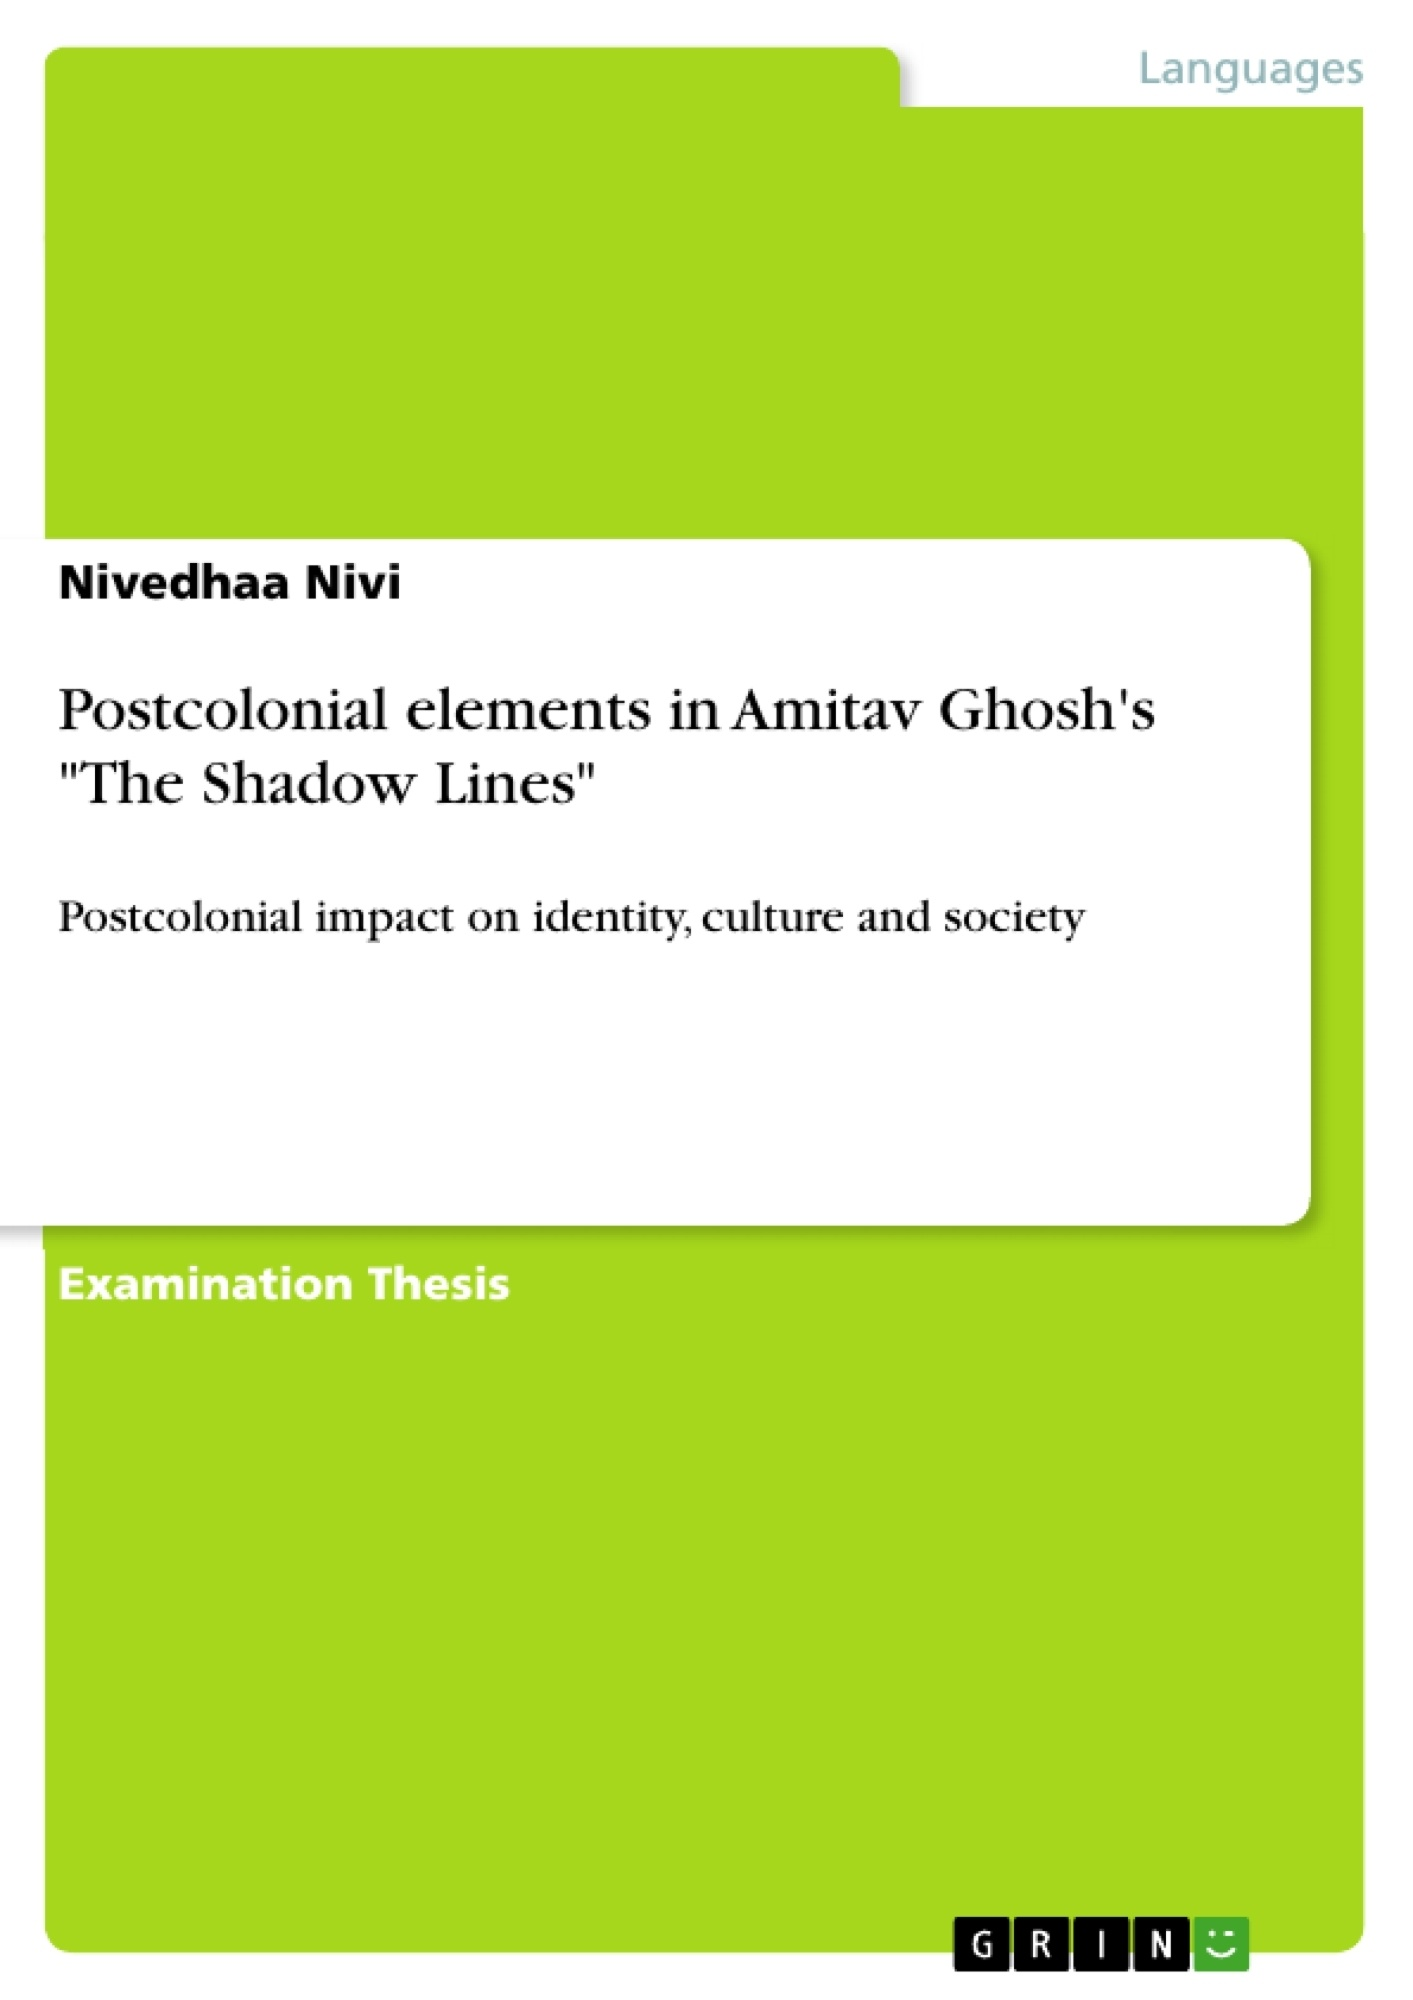 thesis on the shadow lines by amitav ghosh